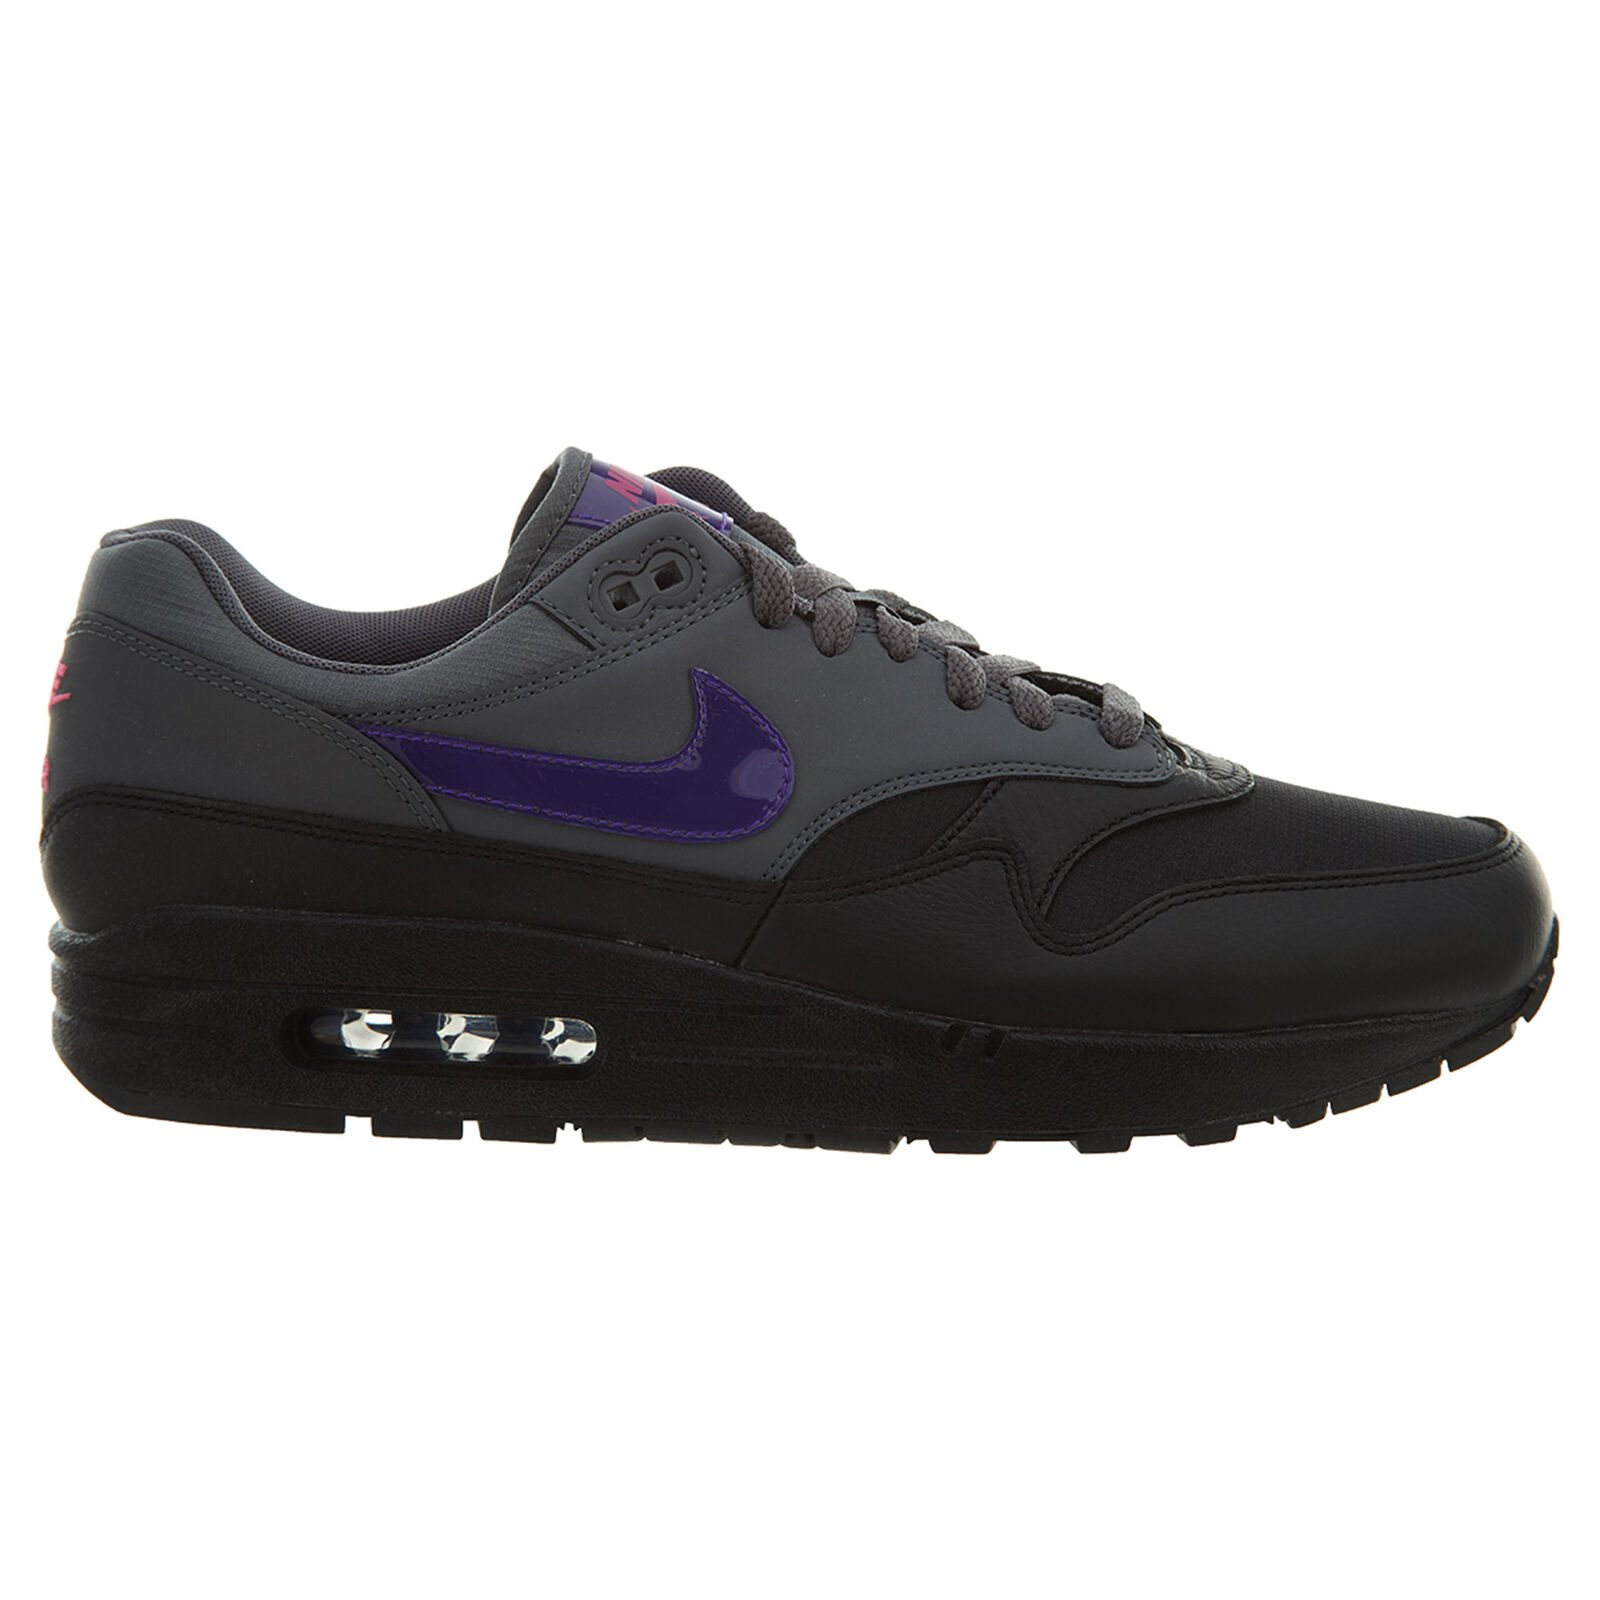 Nike Air Max 1 Mens AR1249-002 Running Dark Grey Fierce Purple Running AR1249-002 Shoes Size 9.5 1e3089